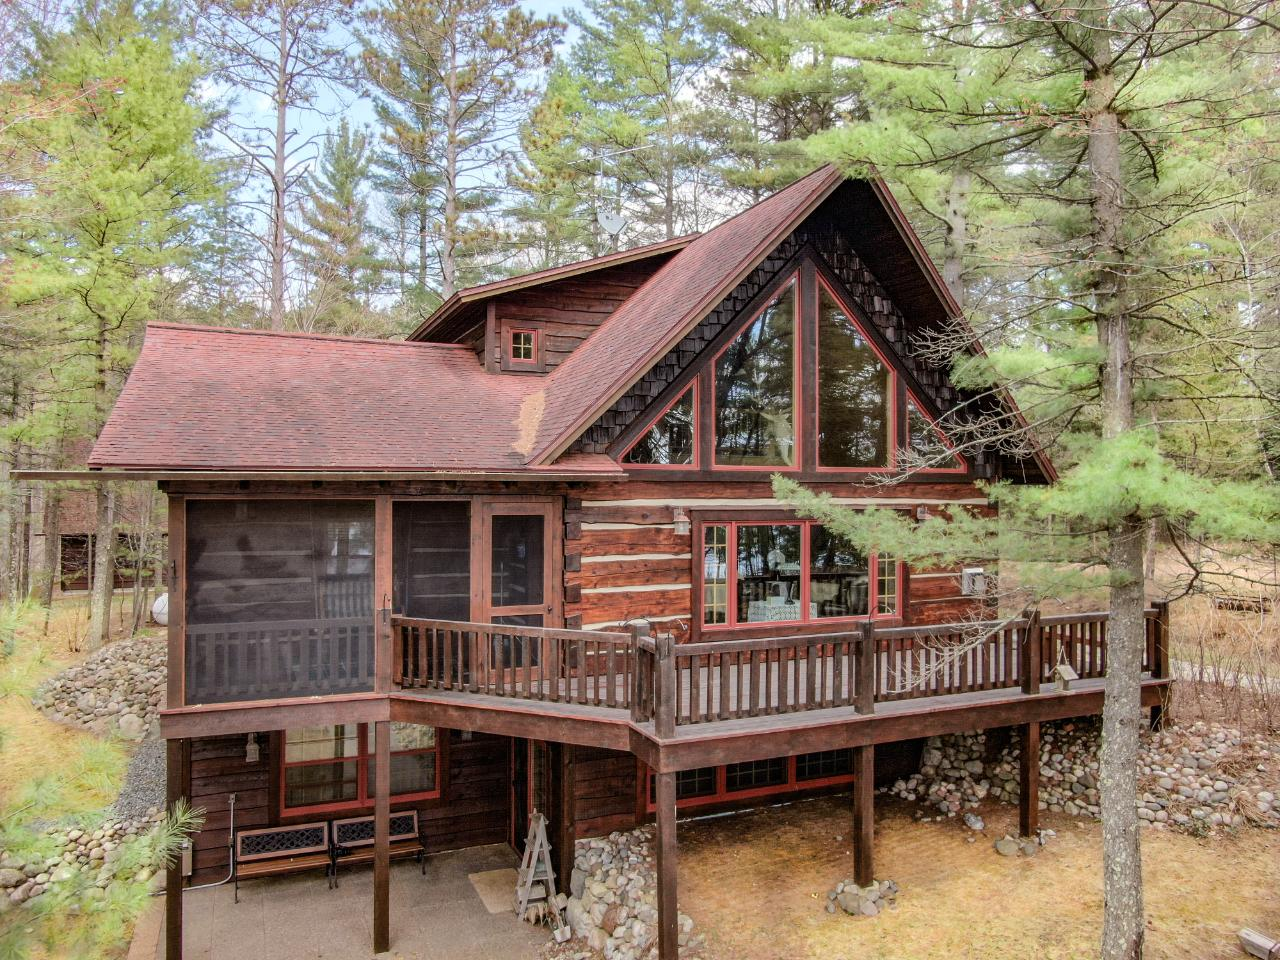 MALBY LAKE LUXURY FULL LOG HOME - This 3BR/4 BA log home is the quintessential property for those with impeccable taste who are looking to enjoy the quiet Northwoods lifestyle. The property features 124 ft of frontage on Malby Lake and nearly an acre of beautifully landscaped land. The craftmanship in the home (which includes granite counter-tops, butternut cabinets, cathedral ceilings, stone fireplace, cherry flooring, cedar doors, antique clawfoot bathtub, and more!) is immediately apparent. With a bedroom with connected bathroom on every level, this home is set up perfectly as a multi-family vacation home. The detached 2-car garage compliments the house with its wood and stone siding, custom coach doors, and an extra storage room on the second floor. With all your shopping needs a short 5-minute drive away in Minocqua, this property really is the best of both worlds. The snowmobile trail is also nearby!!